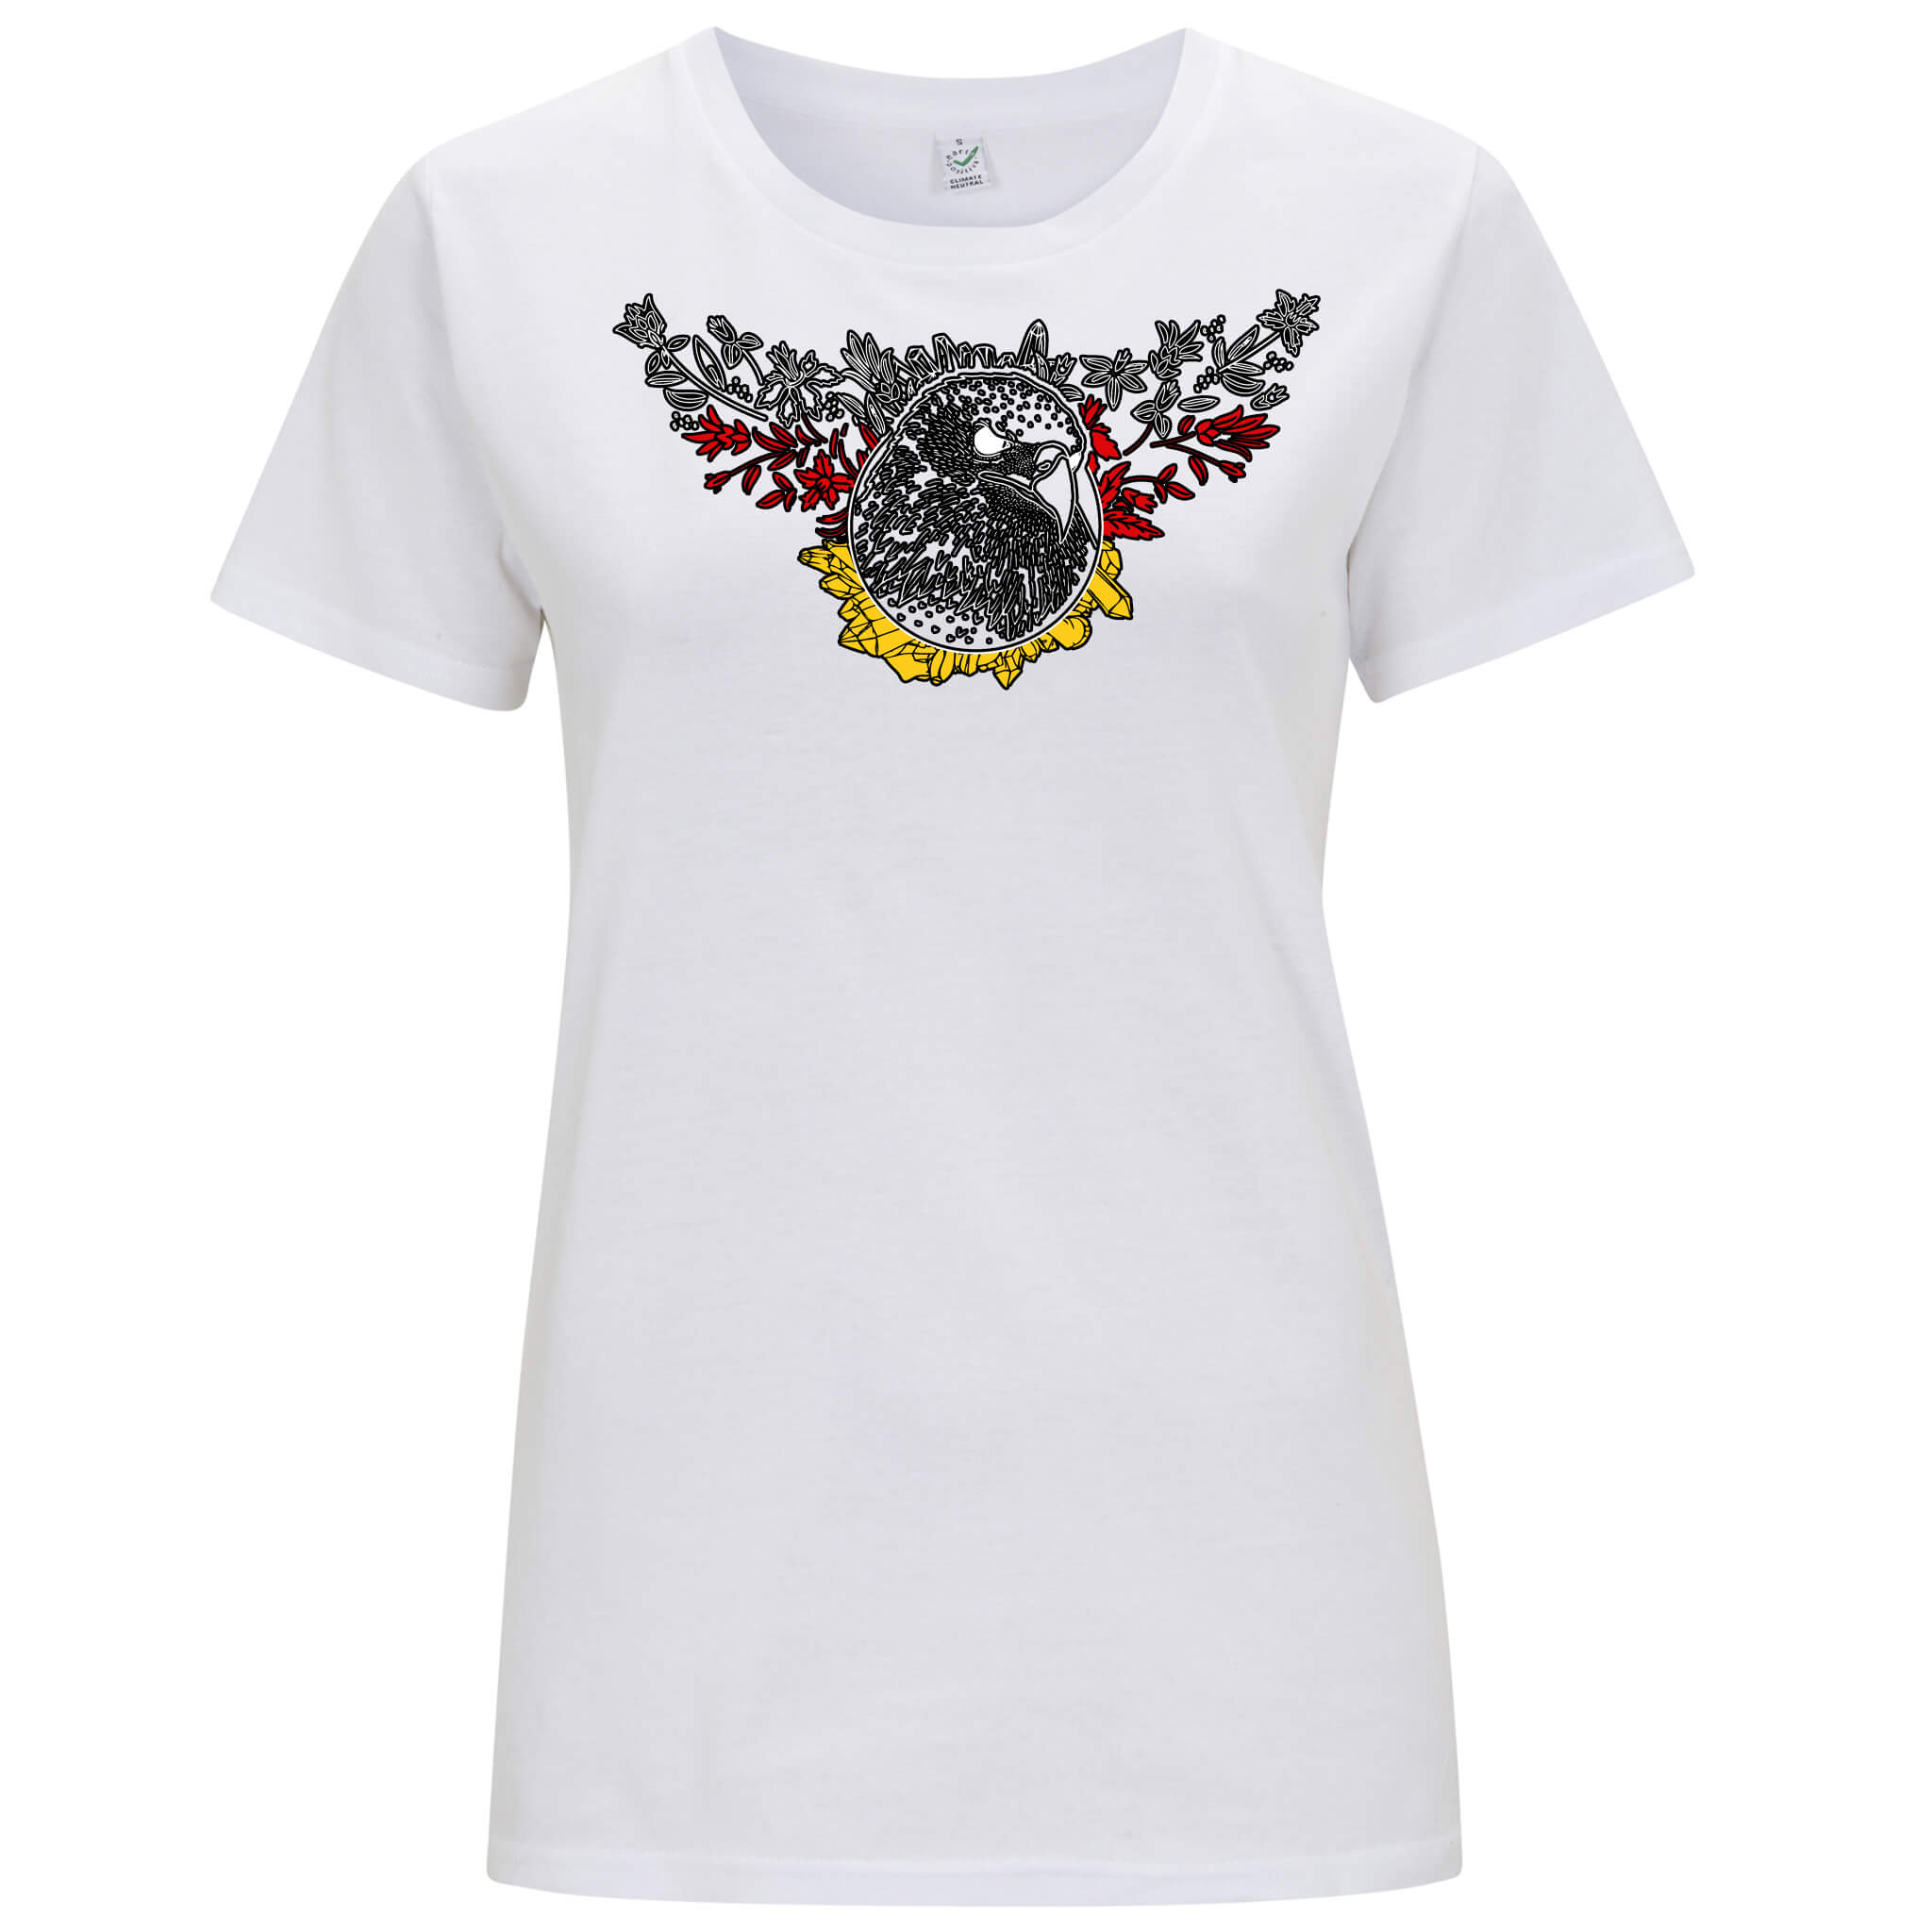 Internazionale Germania - T-shirt Donna - T-Shirt by Fol The Brand